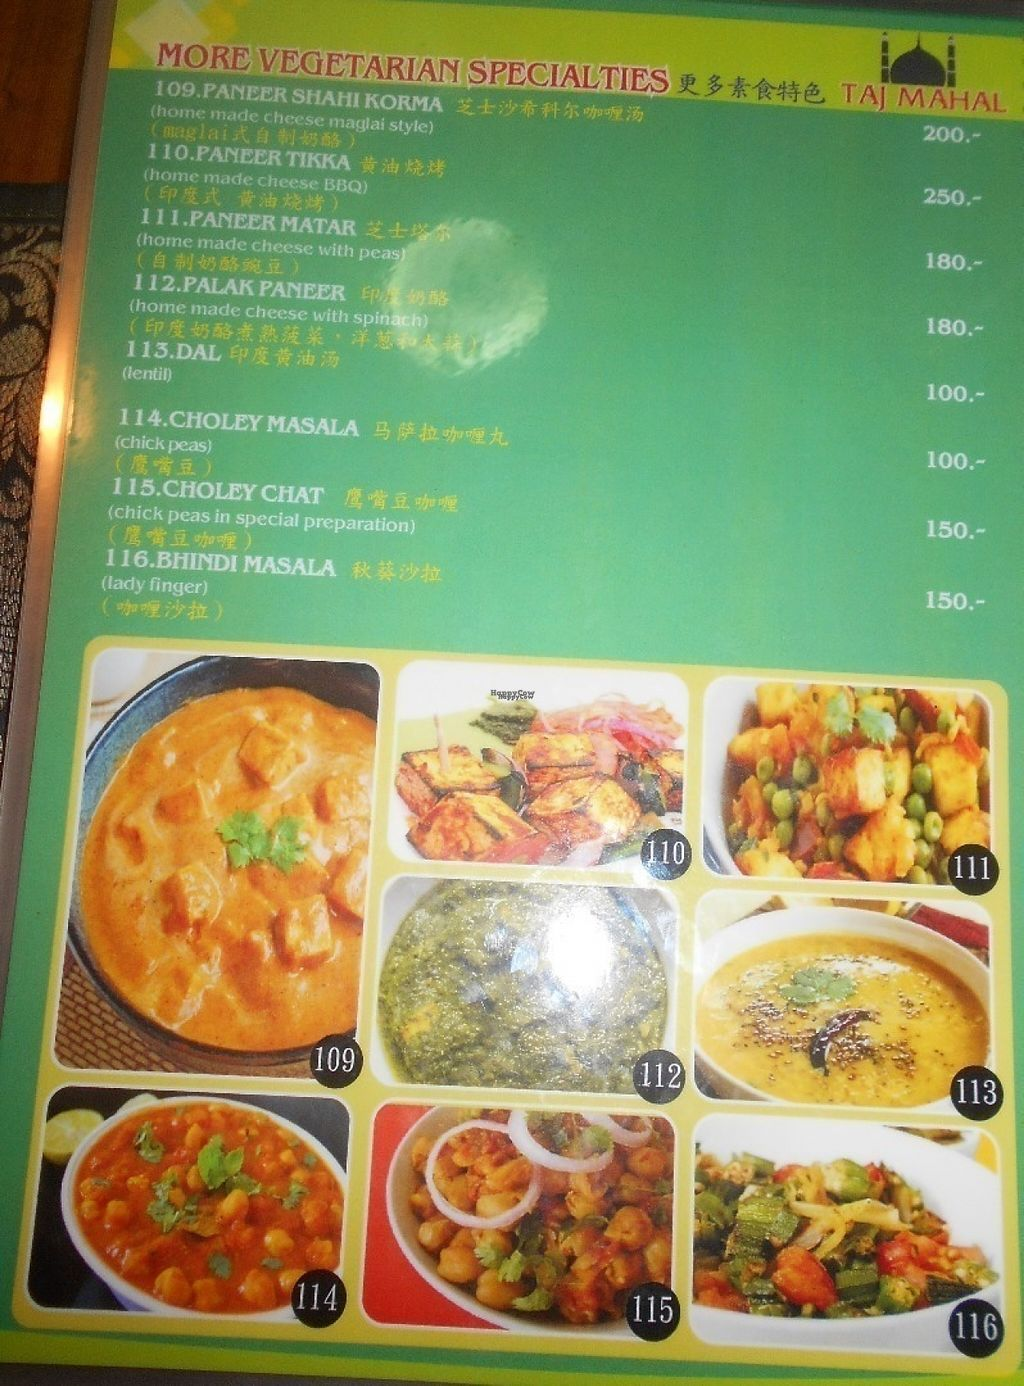 """Photo of Kashmir Indian Restaurant  by <a href=""""/members/profile/Kelly%20Kelly"""">Kelly Kelly</a> <br/>Kashmir Indian Restaurant <br/> August 5, 2016  - <a href='/contact/abuse/image/77951/165825'>Report</a>"""